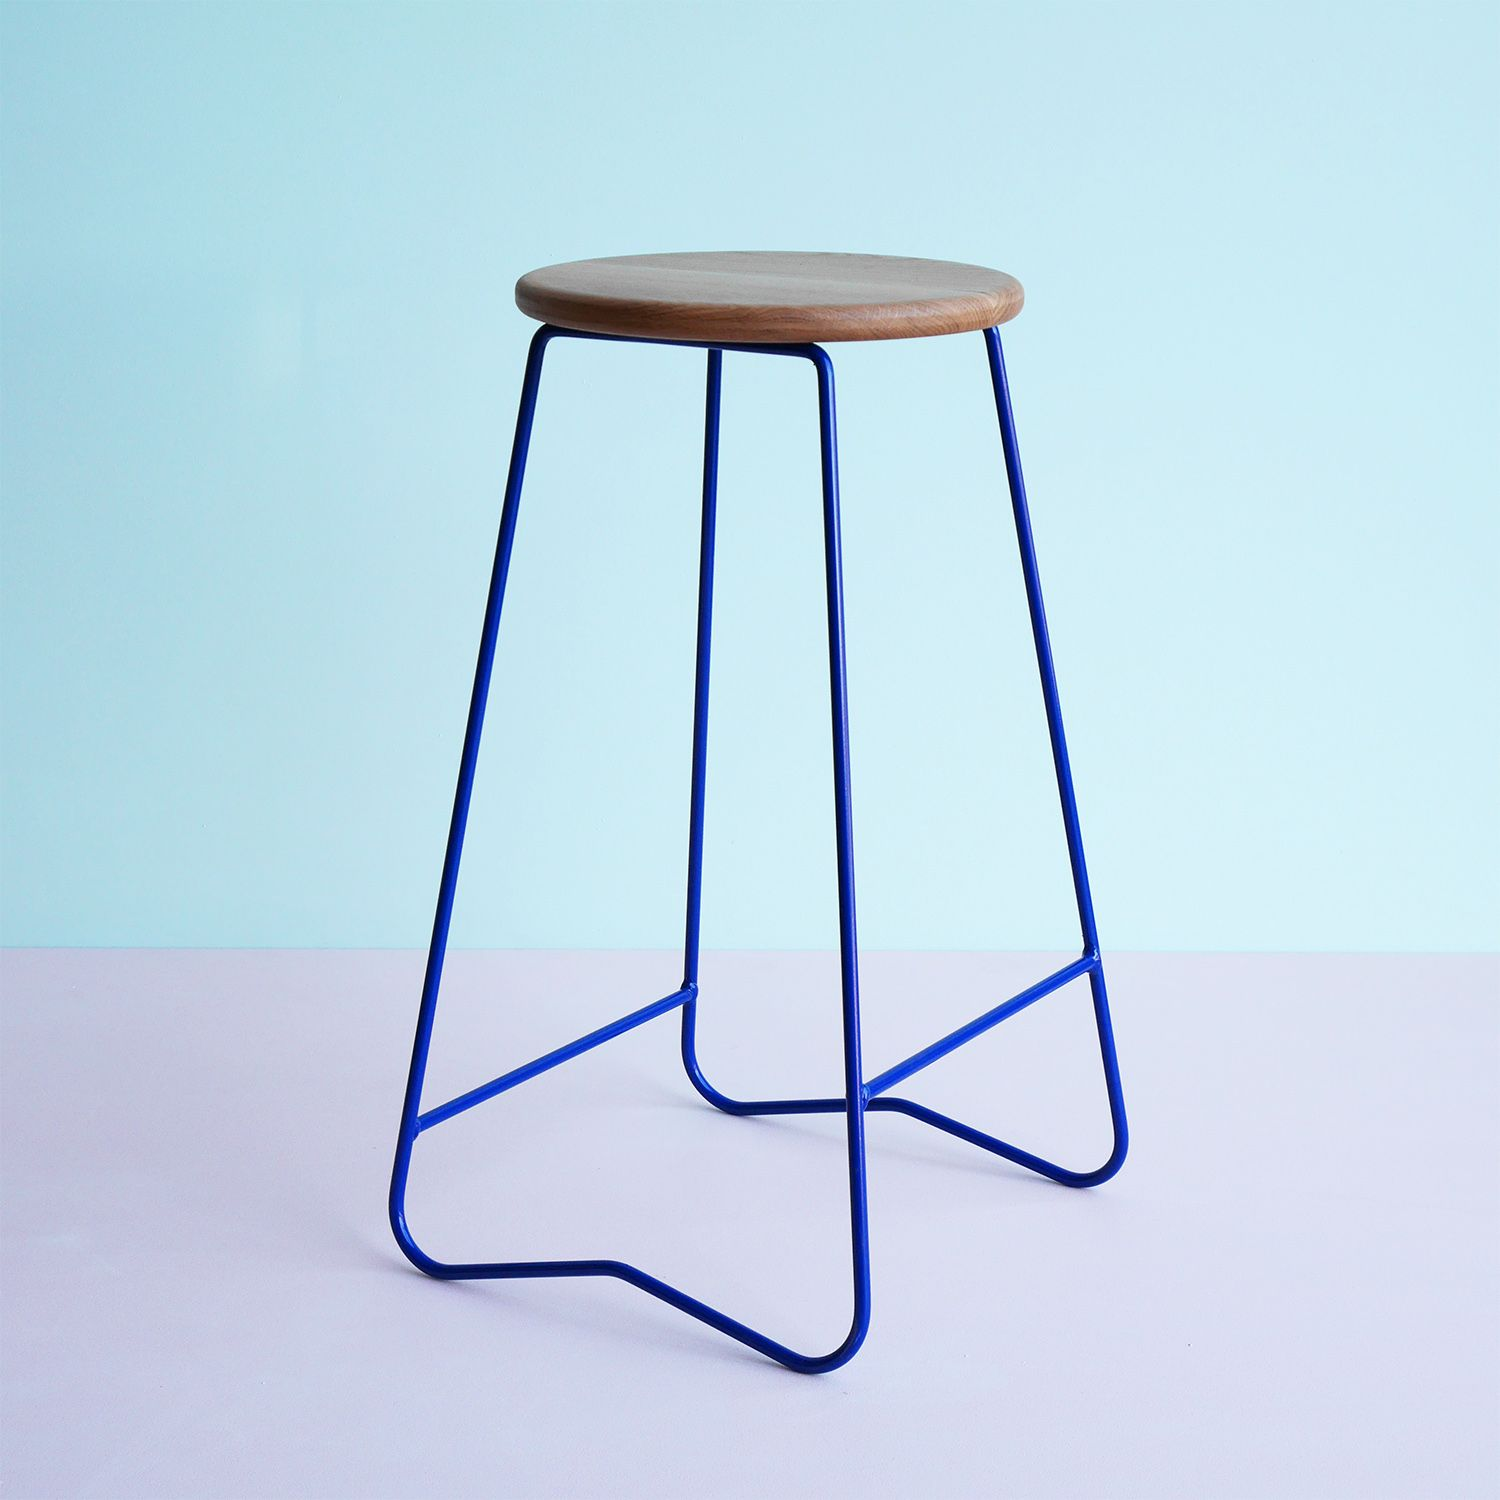 HOPA BLU bar stool American Oak seat on space blue steel frame Made ...